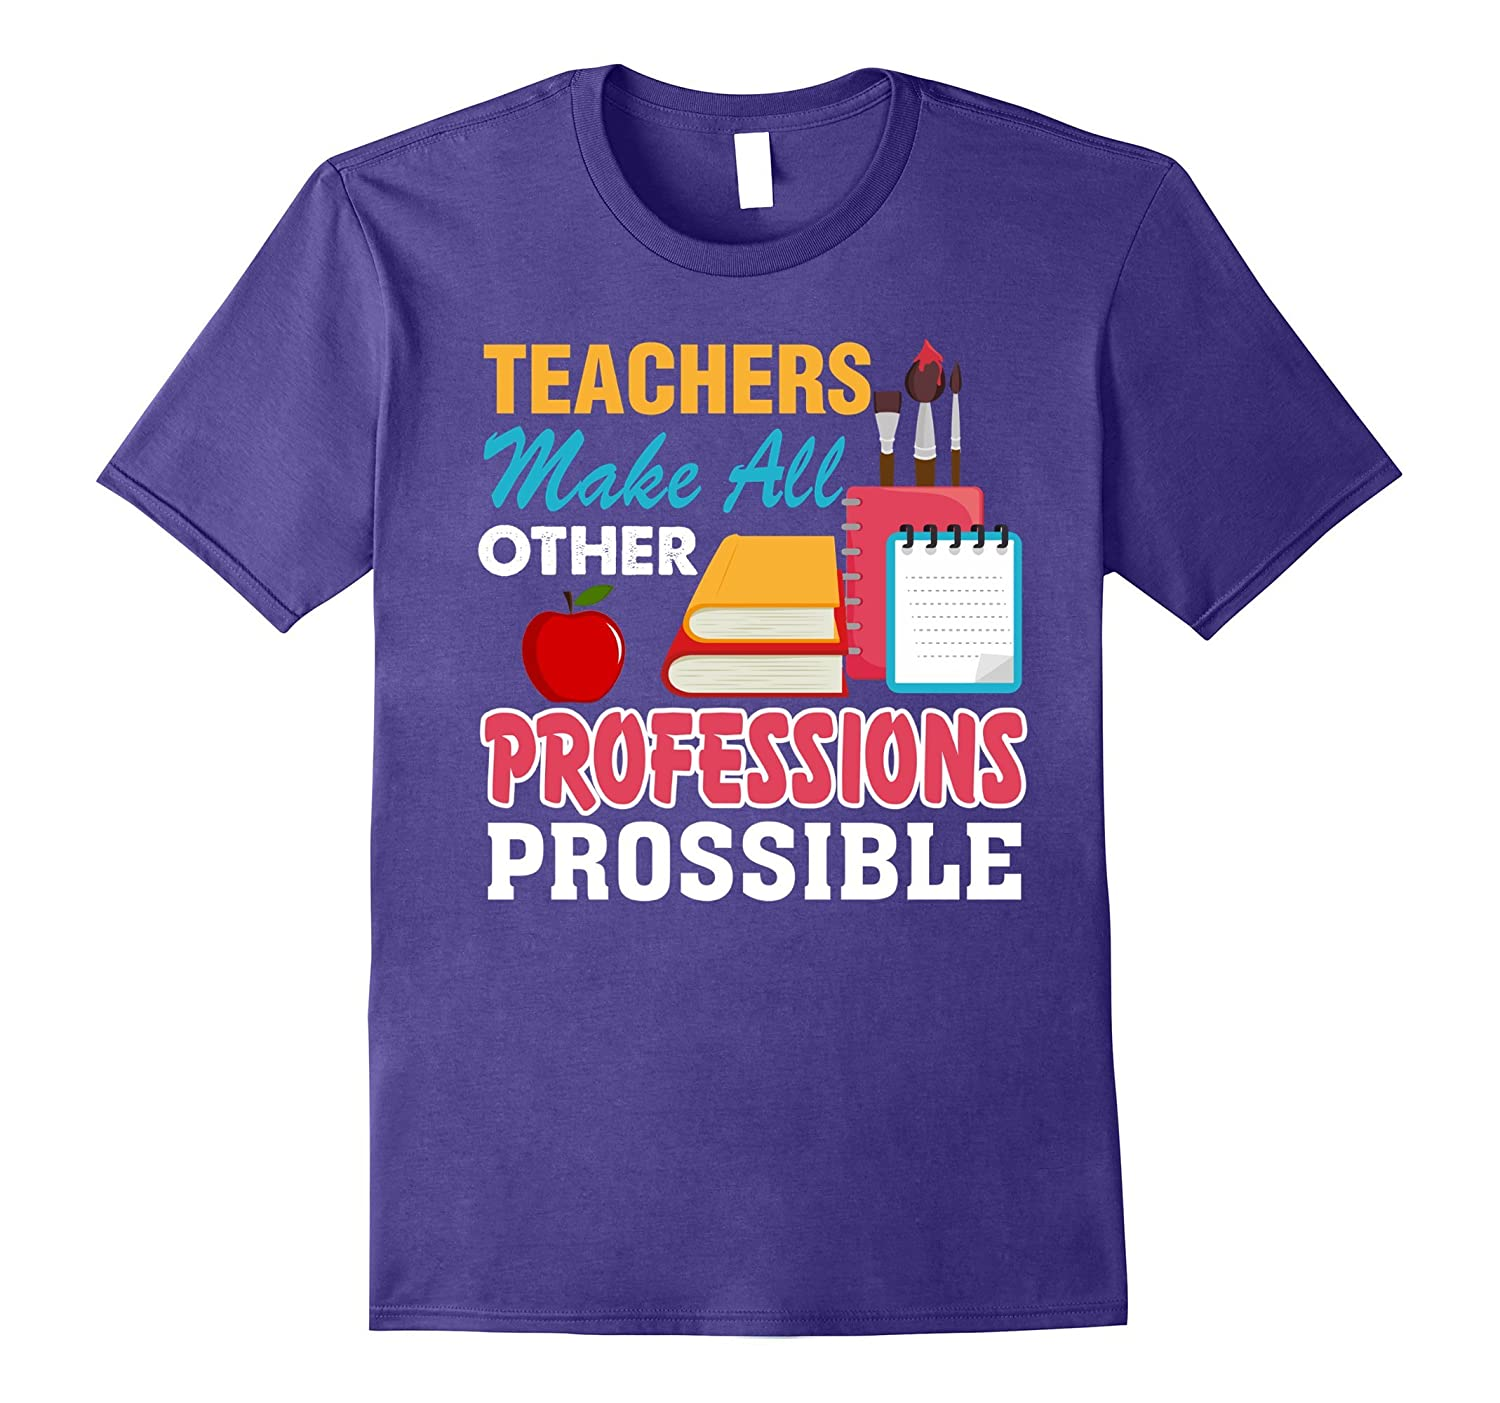 Teachers make all other professions possible T-shirt-Art